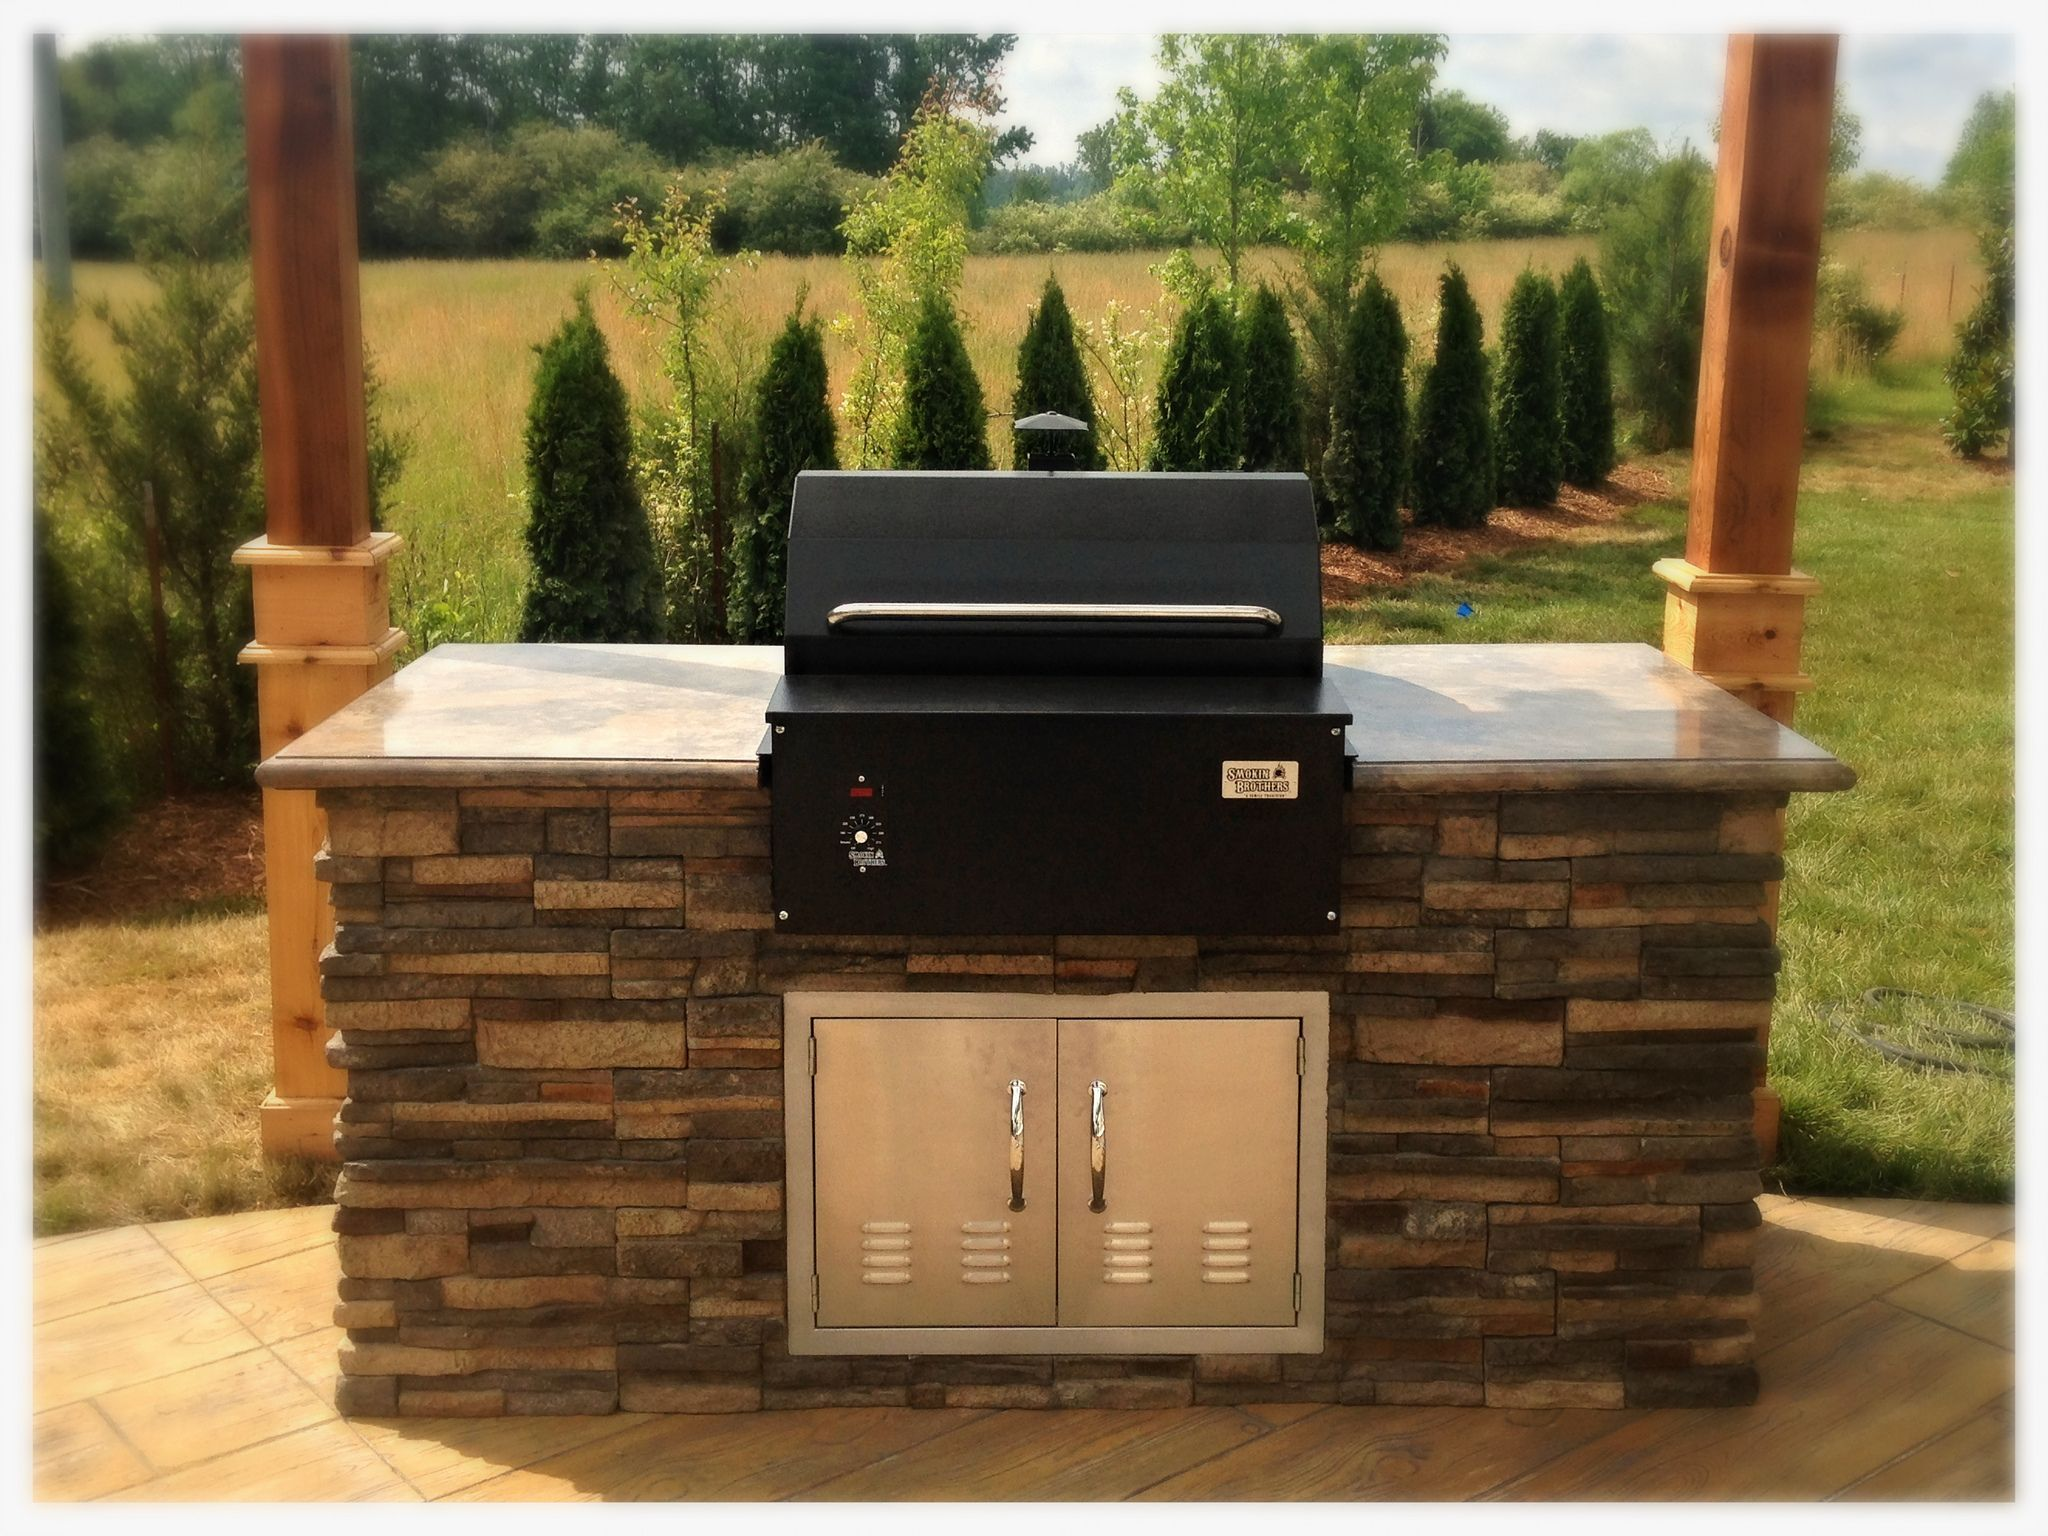 Smokin Brothers Built In Pellet Grill Smoker Apison Tn Built In Grill Hearth And Patio Diy Outdoor Kitchen